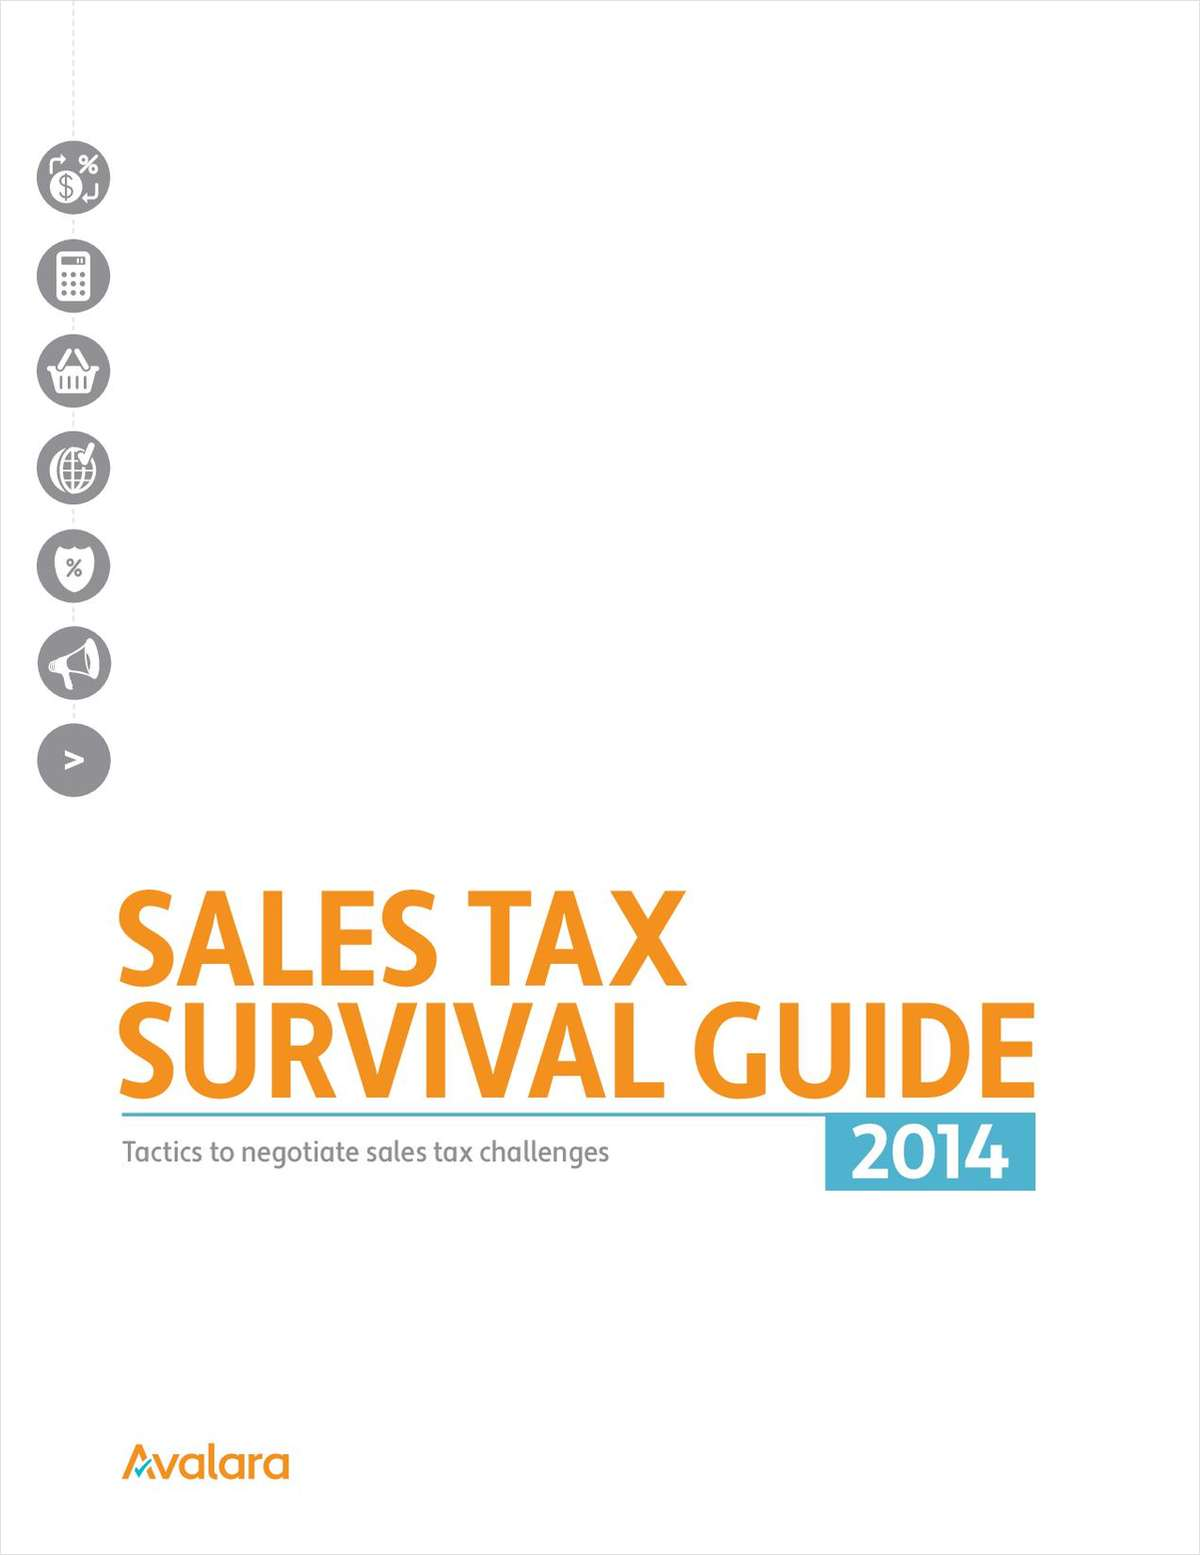 Sales Tax Survival Guide: Tactics To Negotiate Sales Tax Challenges